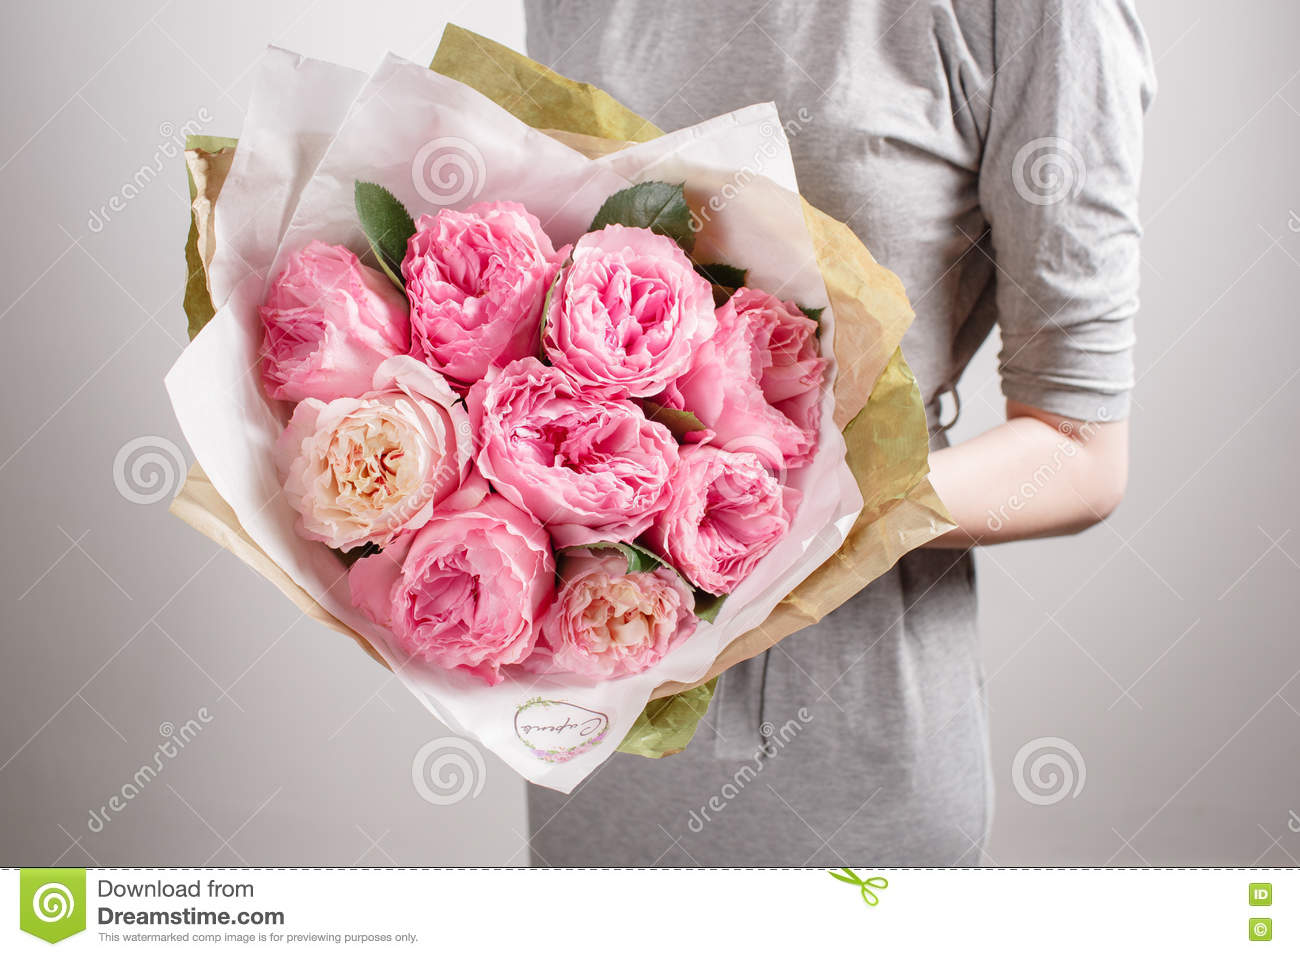 Florist Girl With Peony Flowers Or Pink Garden Roses Young Woman